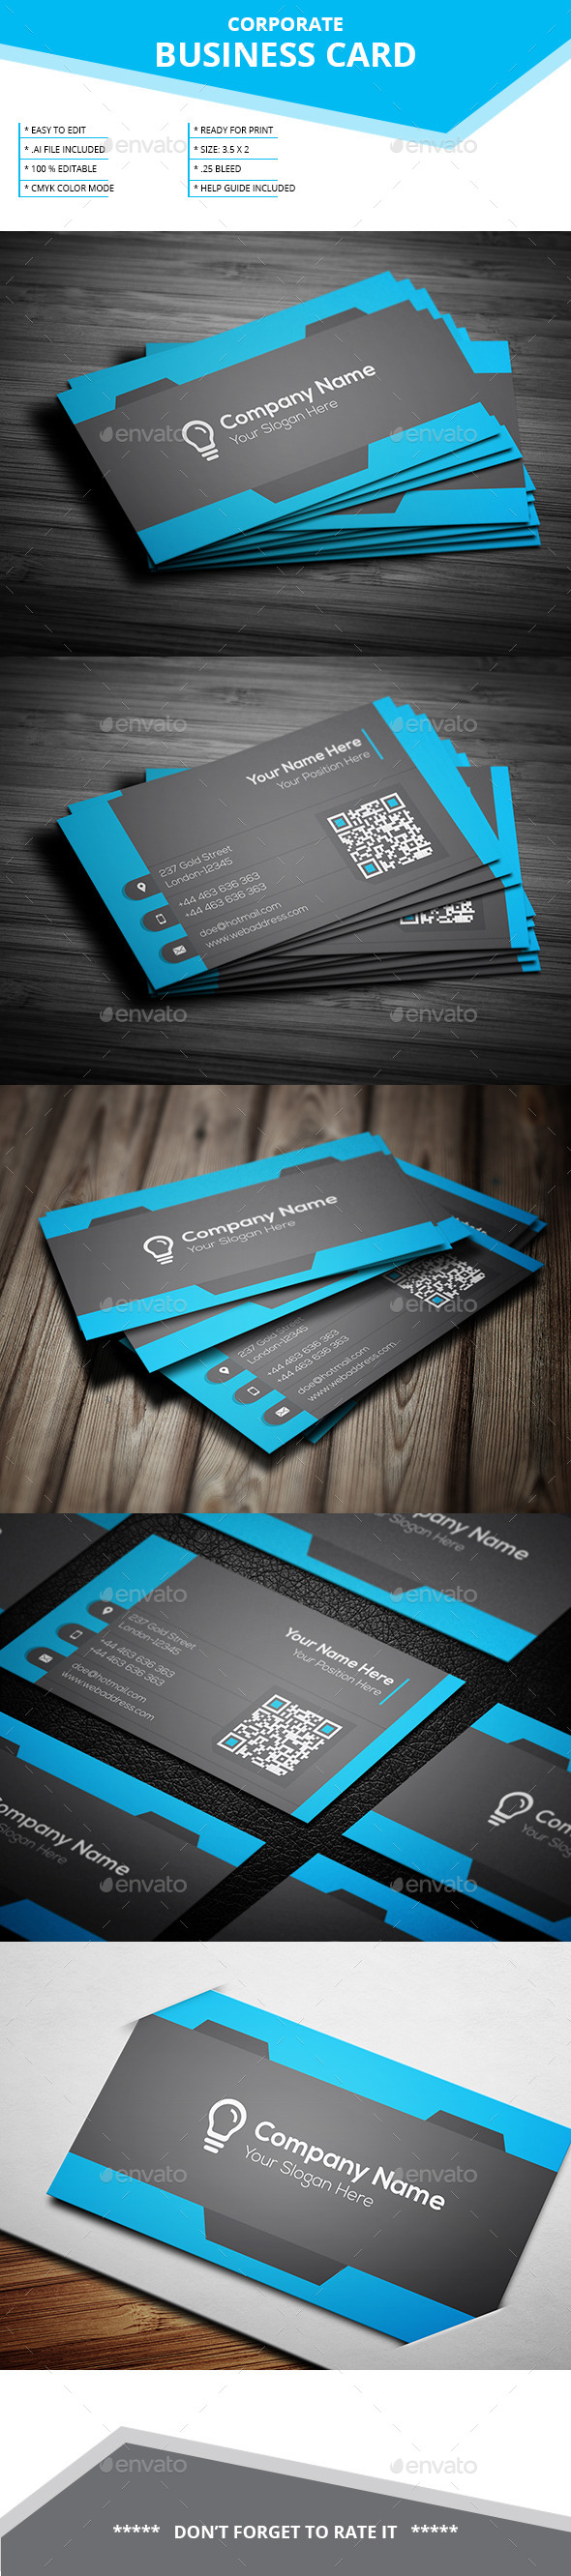 GraphicRiver Corporate Business Card SL 15 11978359